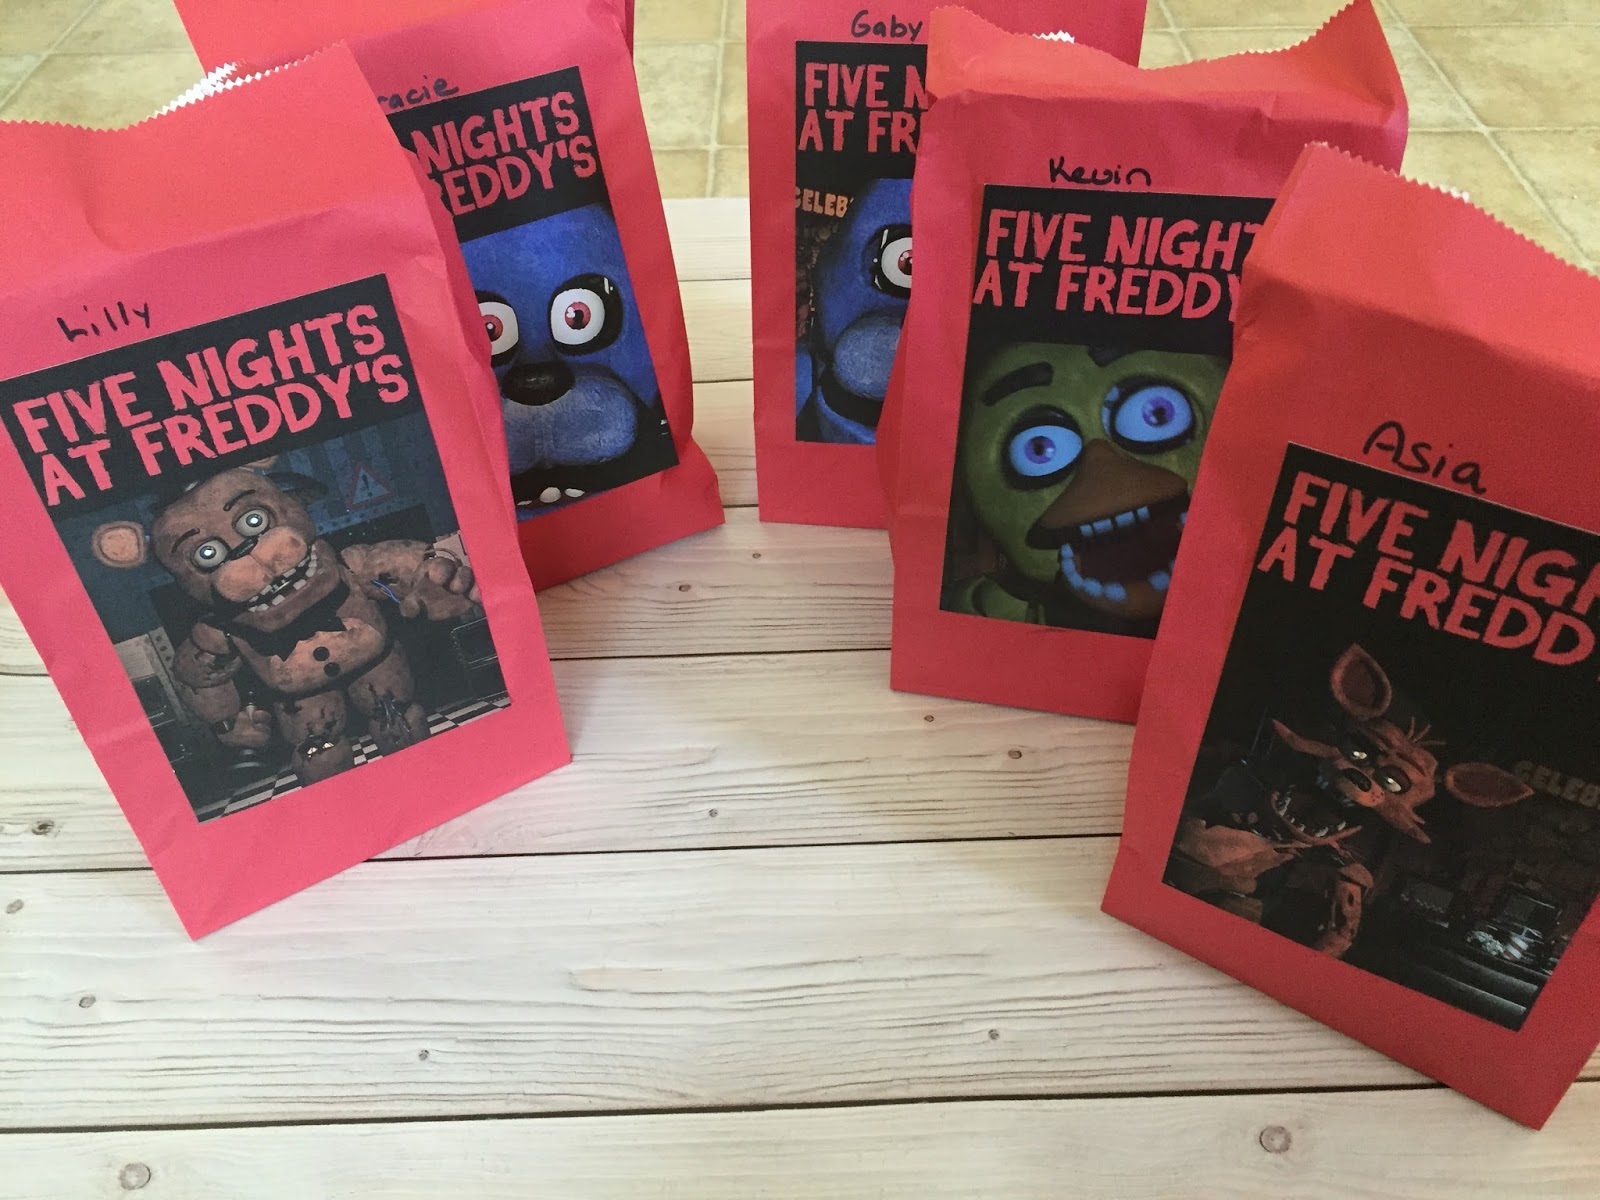 Ideas five nights at freddy party - Then i ordered some gift bags from etsy